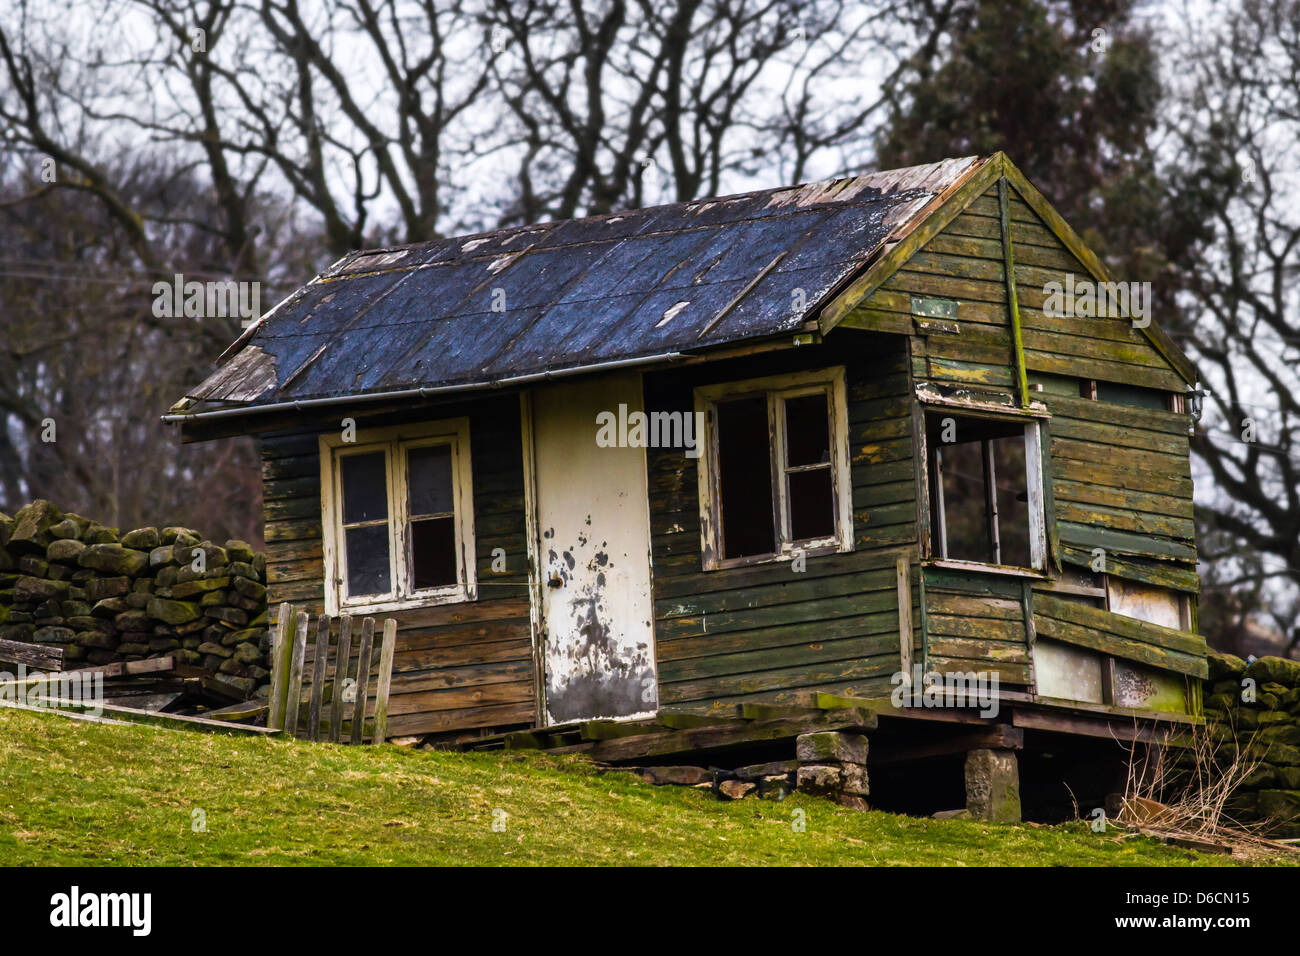 Ramshackled Summerhouse, Yorkshire, UK - Stock Image